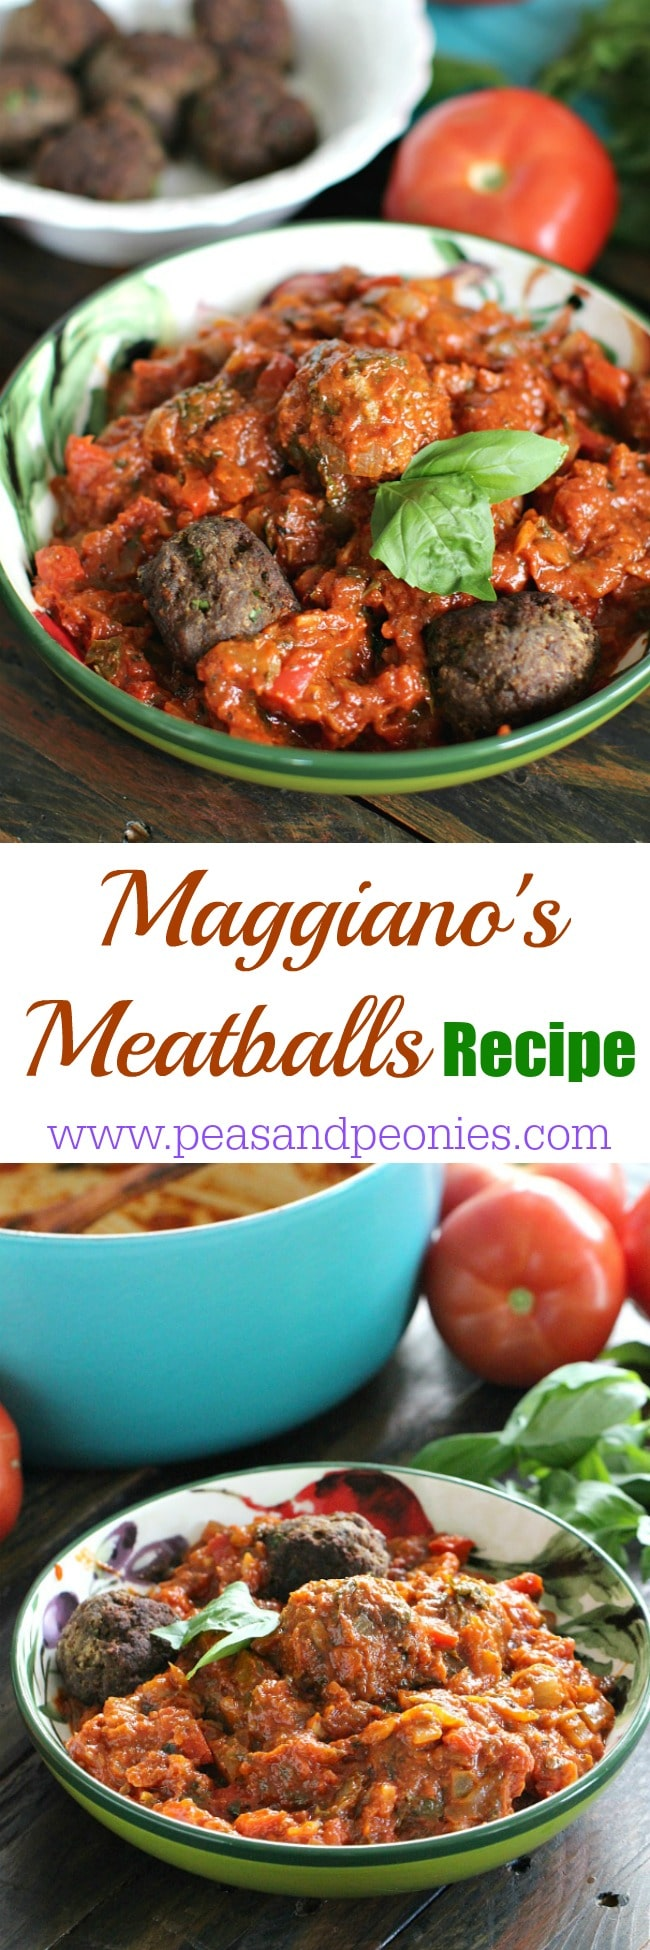 With Maggiano's Meatballs recipe you can make perfect restaurant style meatballs in the comfort of your home. Serve with marinara sauce and spaghetti.